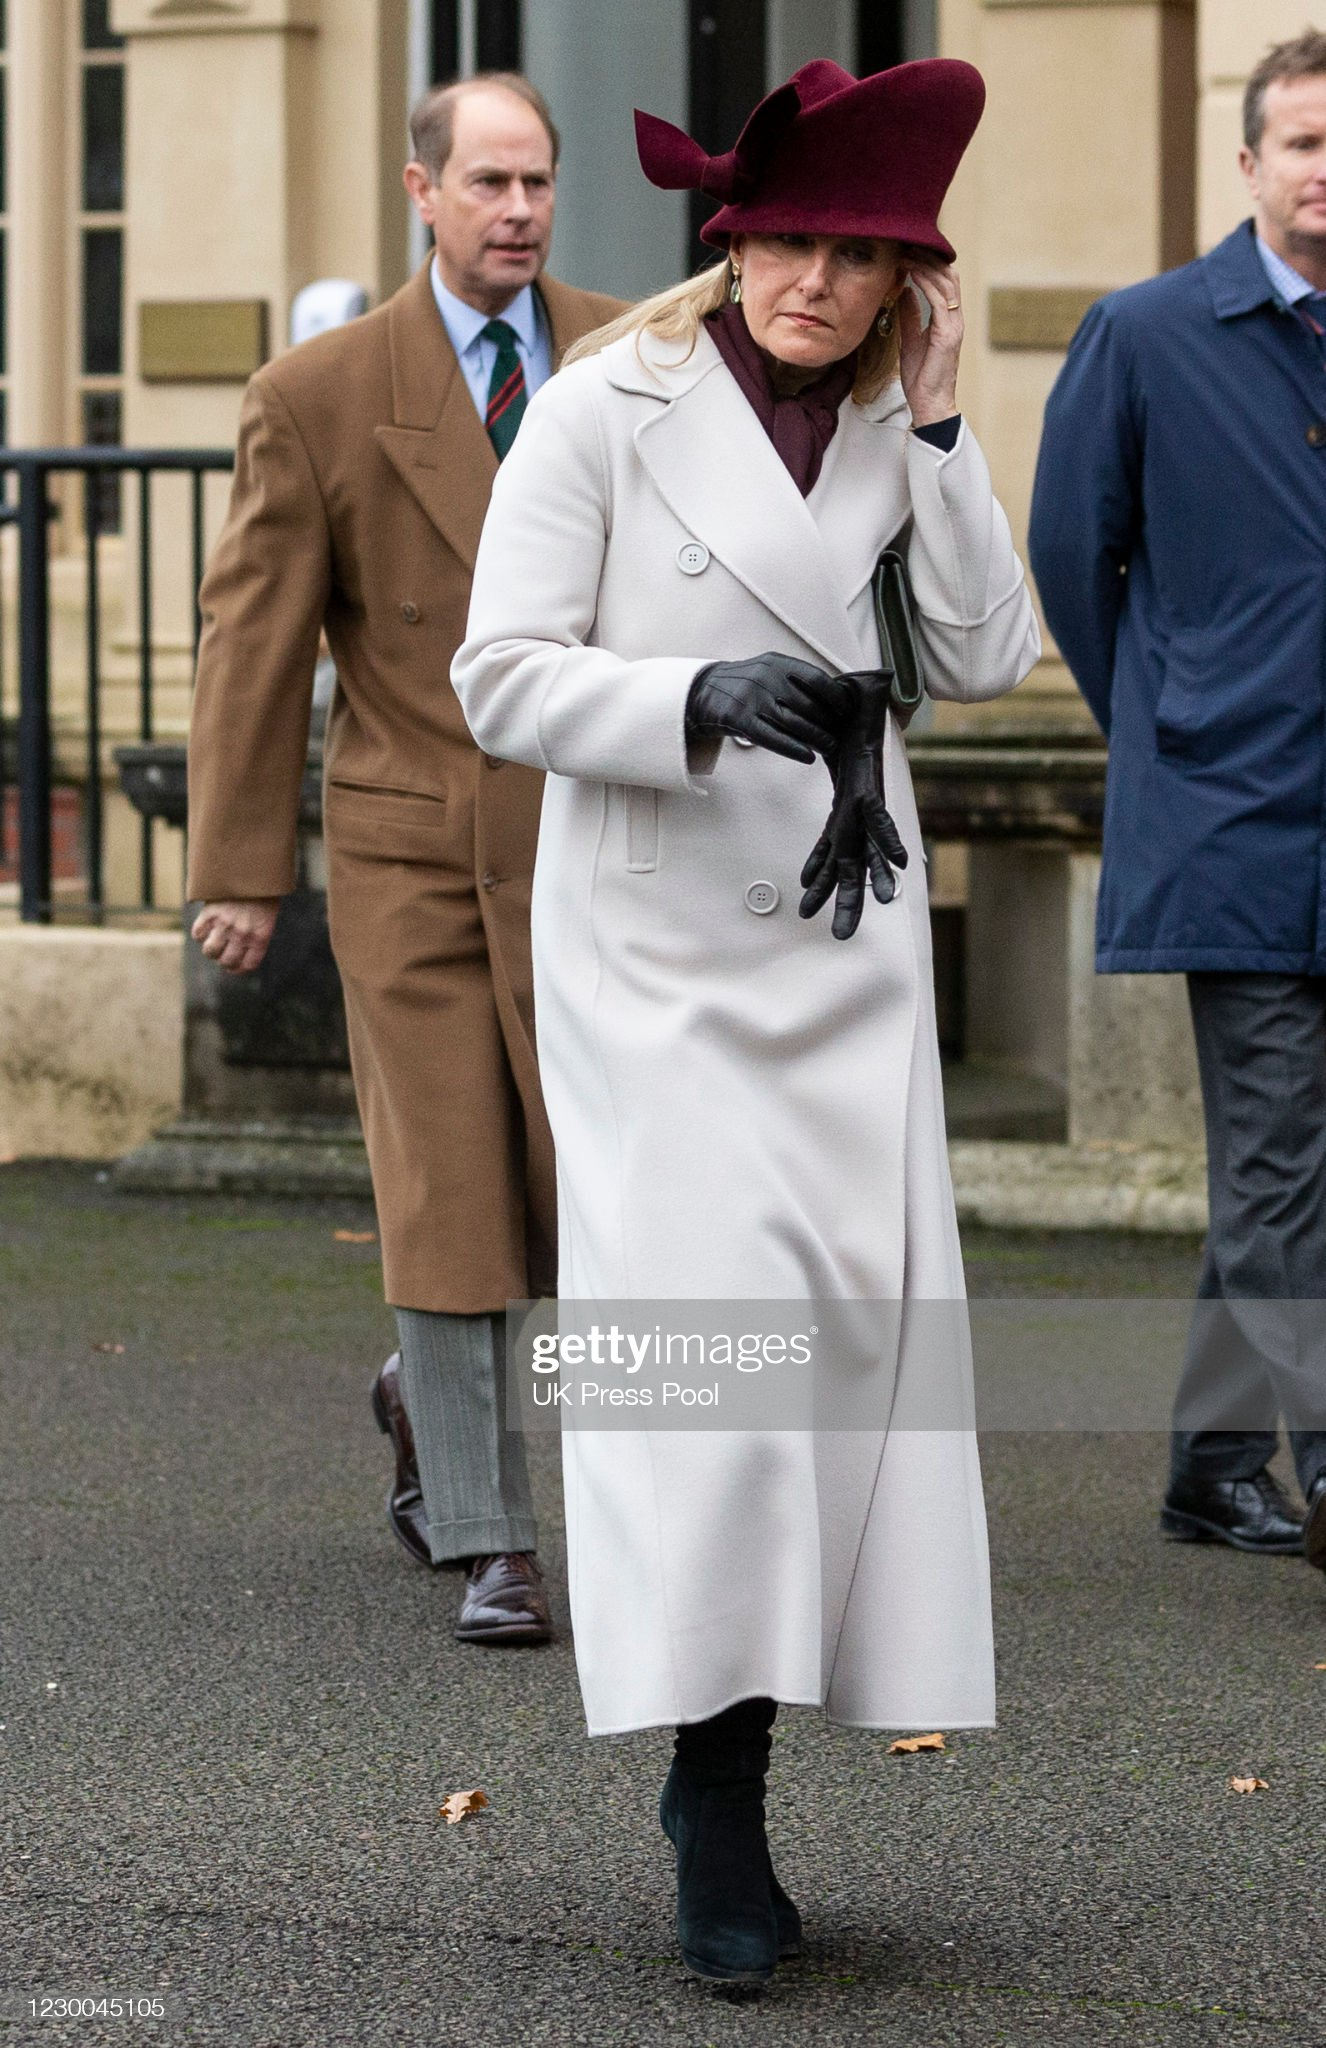 https://media.gettyimages.com/photos/sophie-countess-of-wessex-and-prince-edward-earl-of-wessex-visit-the-picture-id1230045105?s=2048x2048